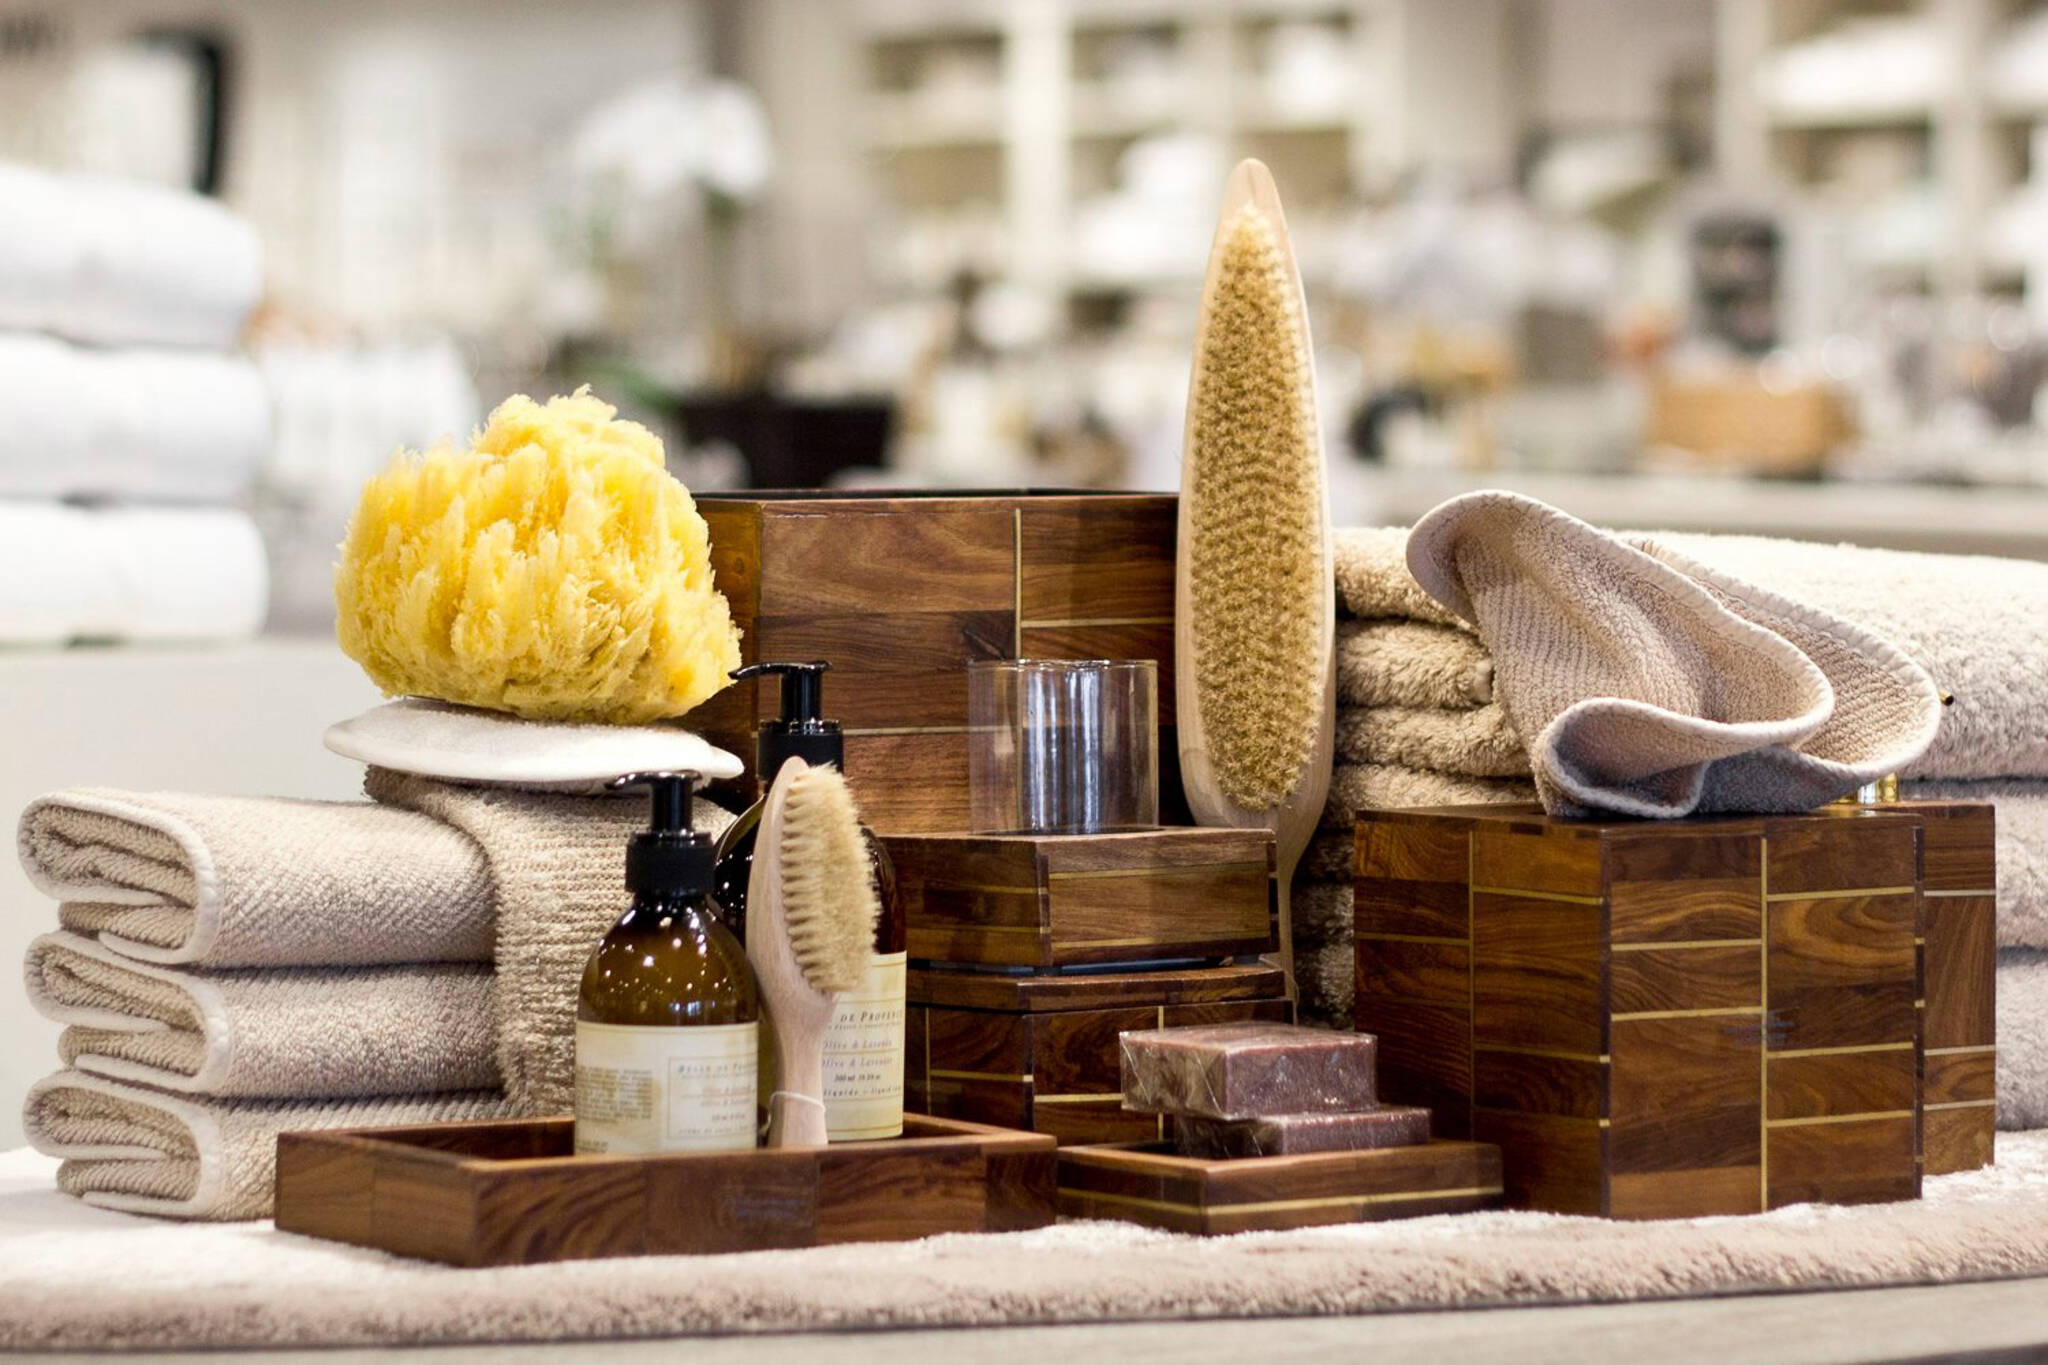 The top 10 bath stores in Toronto